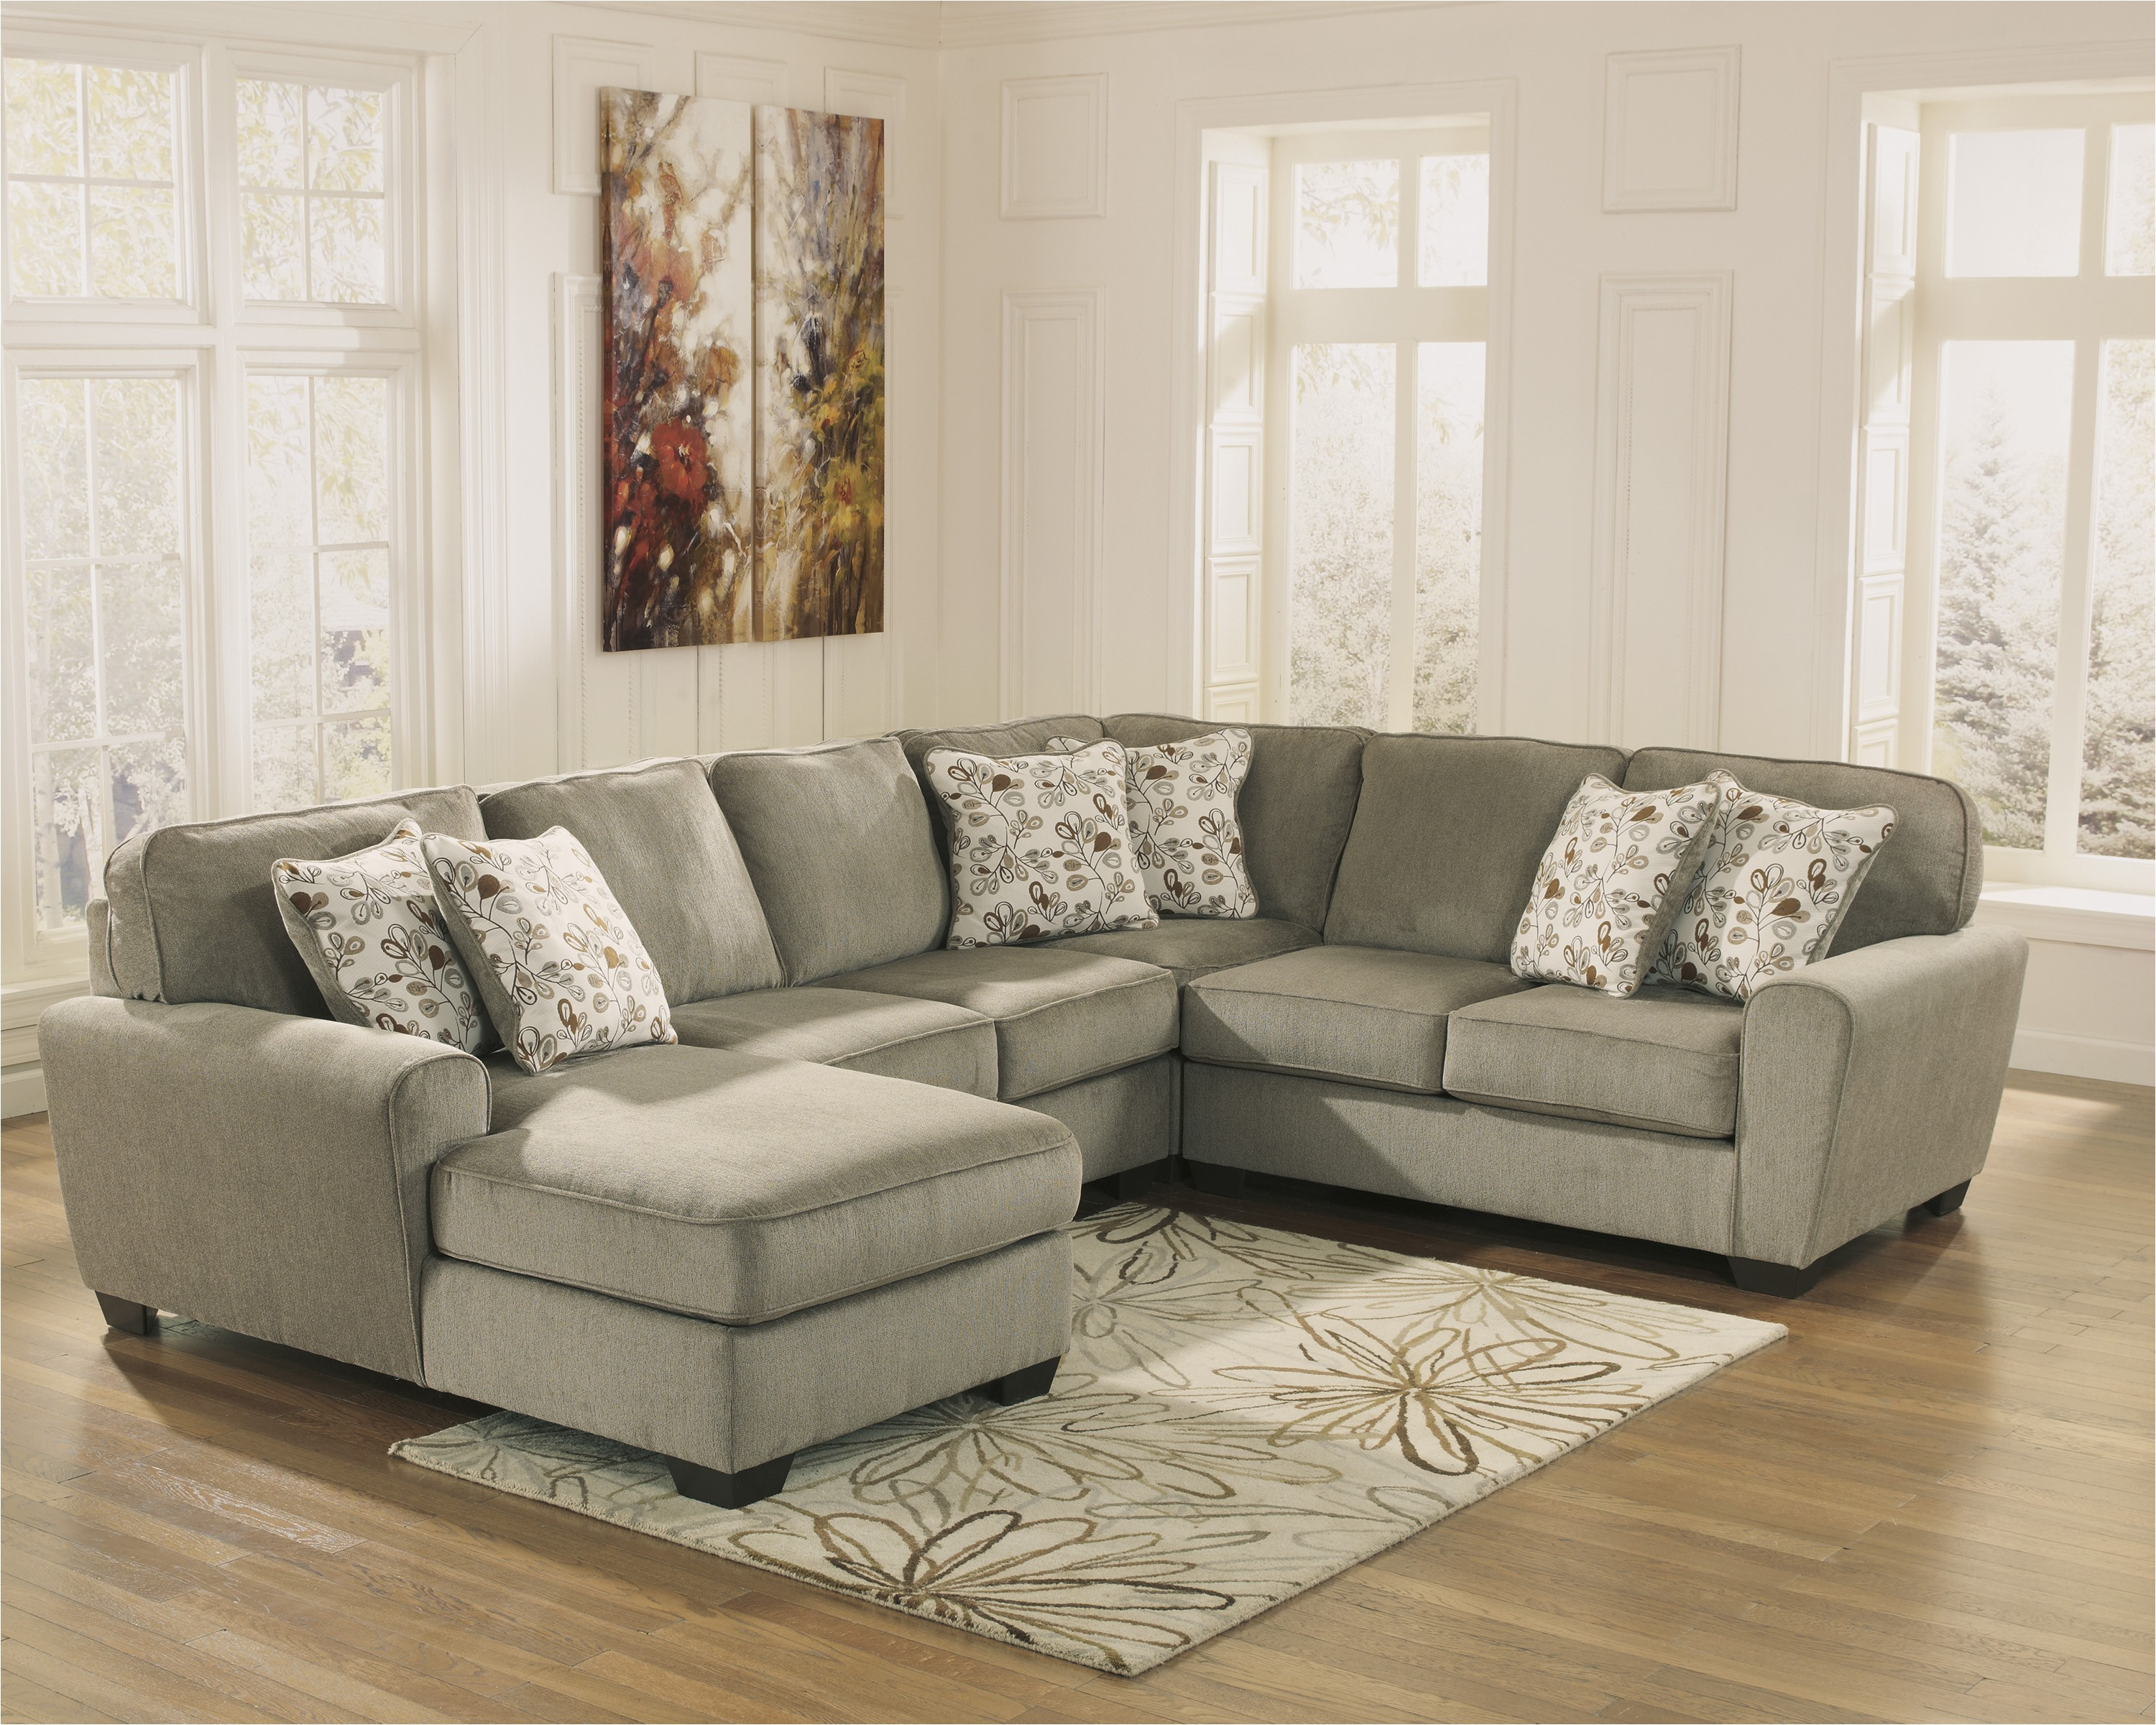 patola park patina 4 piece sectional sofa